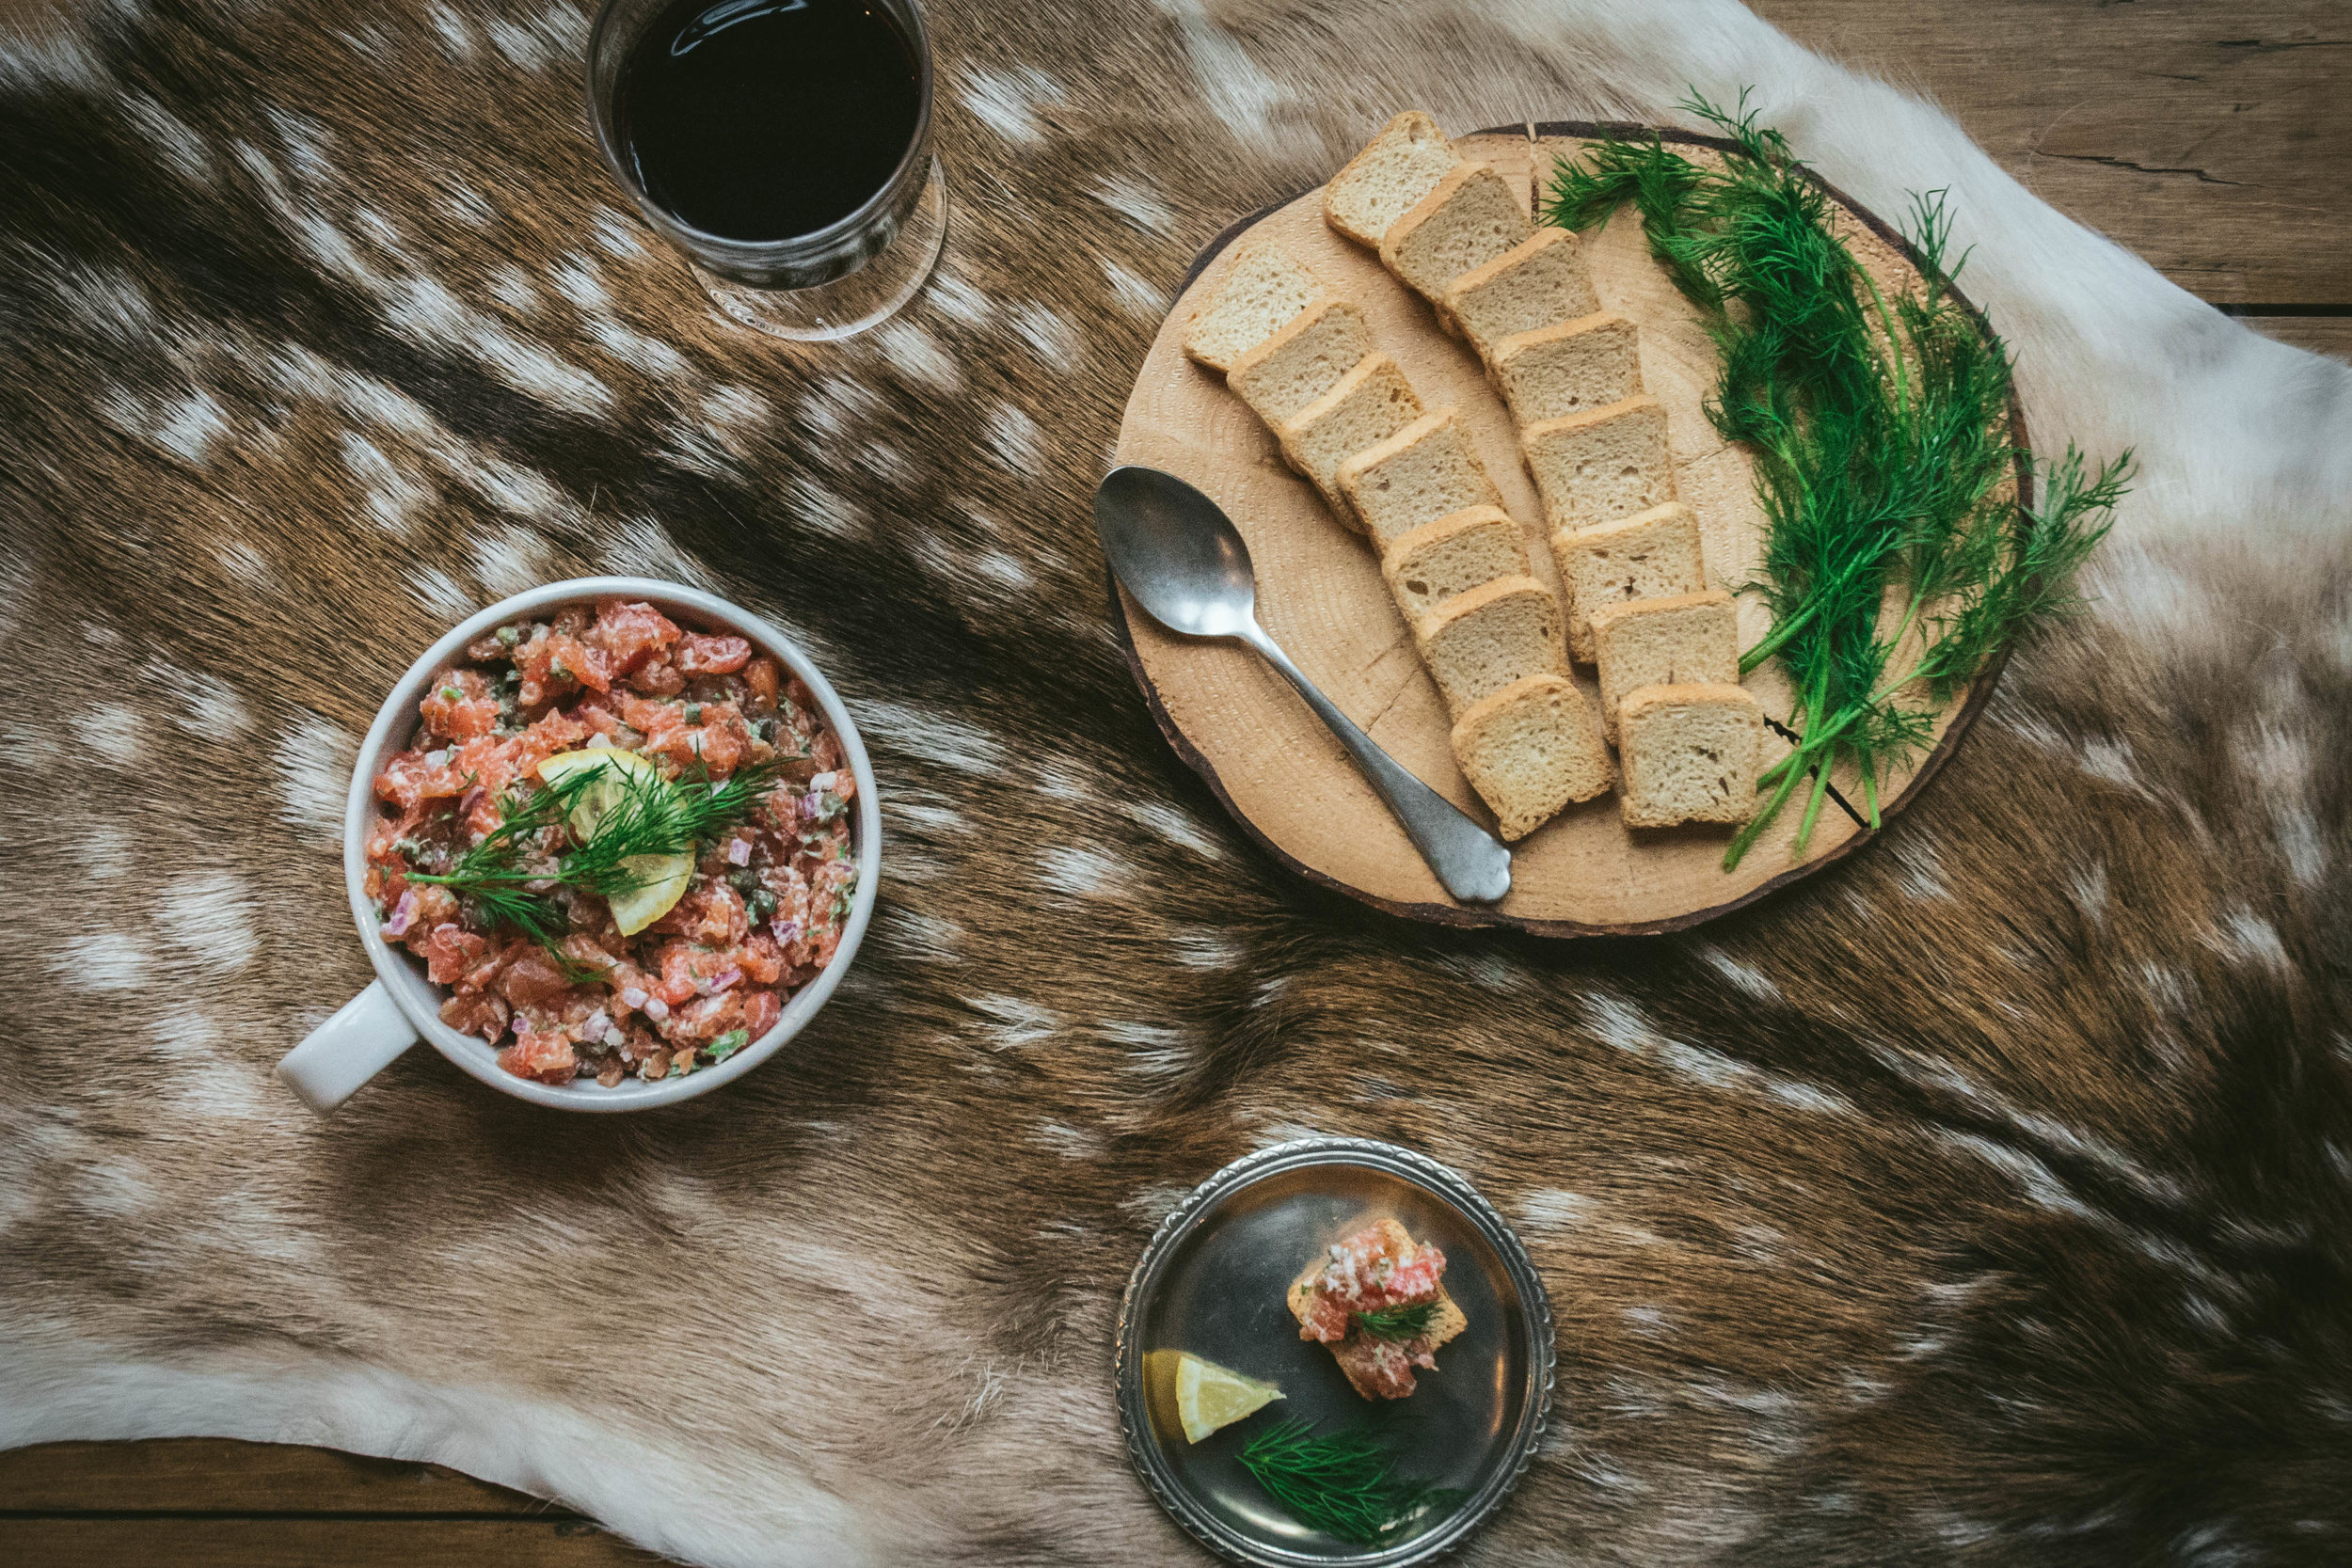 - This preparation is the perfect jumping off point in learning to appreciate and love Nordic cuisine, while making a luxurious, yet simple and sophisticated plate.